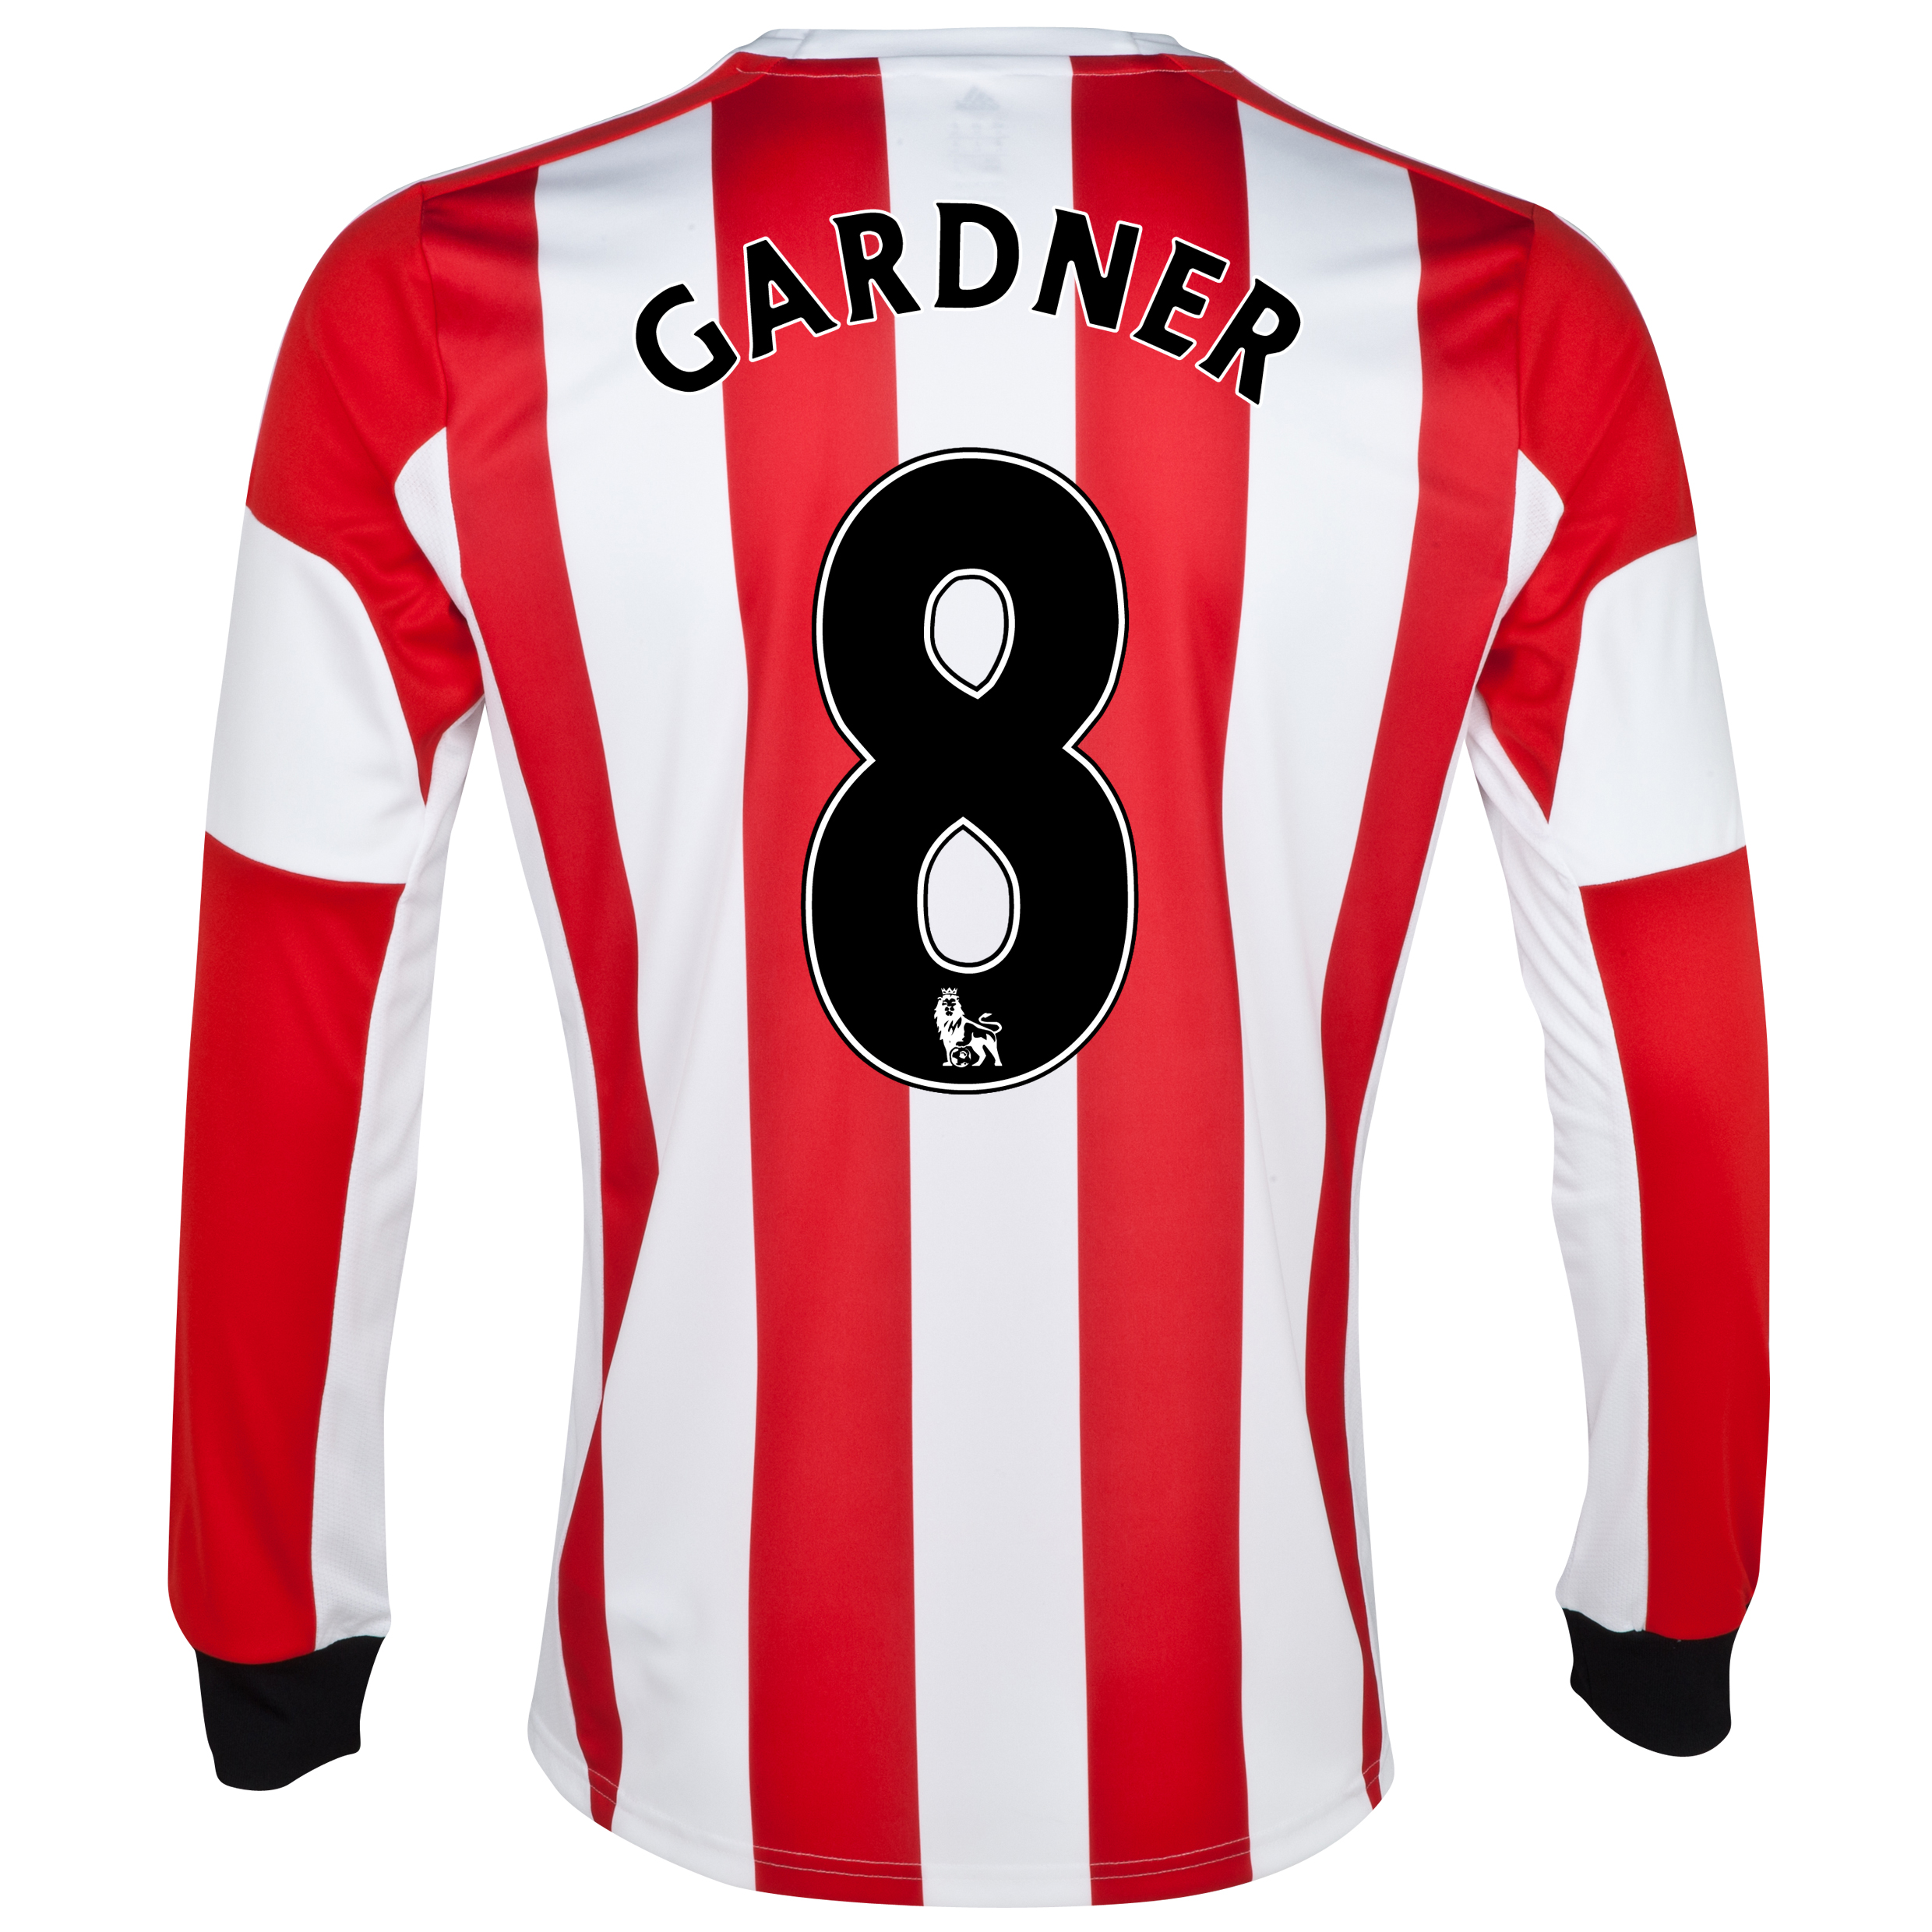 Sunderland Home Shirt 2013/14 - Long Sleeved - Junior with Gardner 8 printing